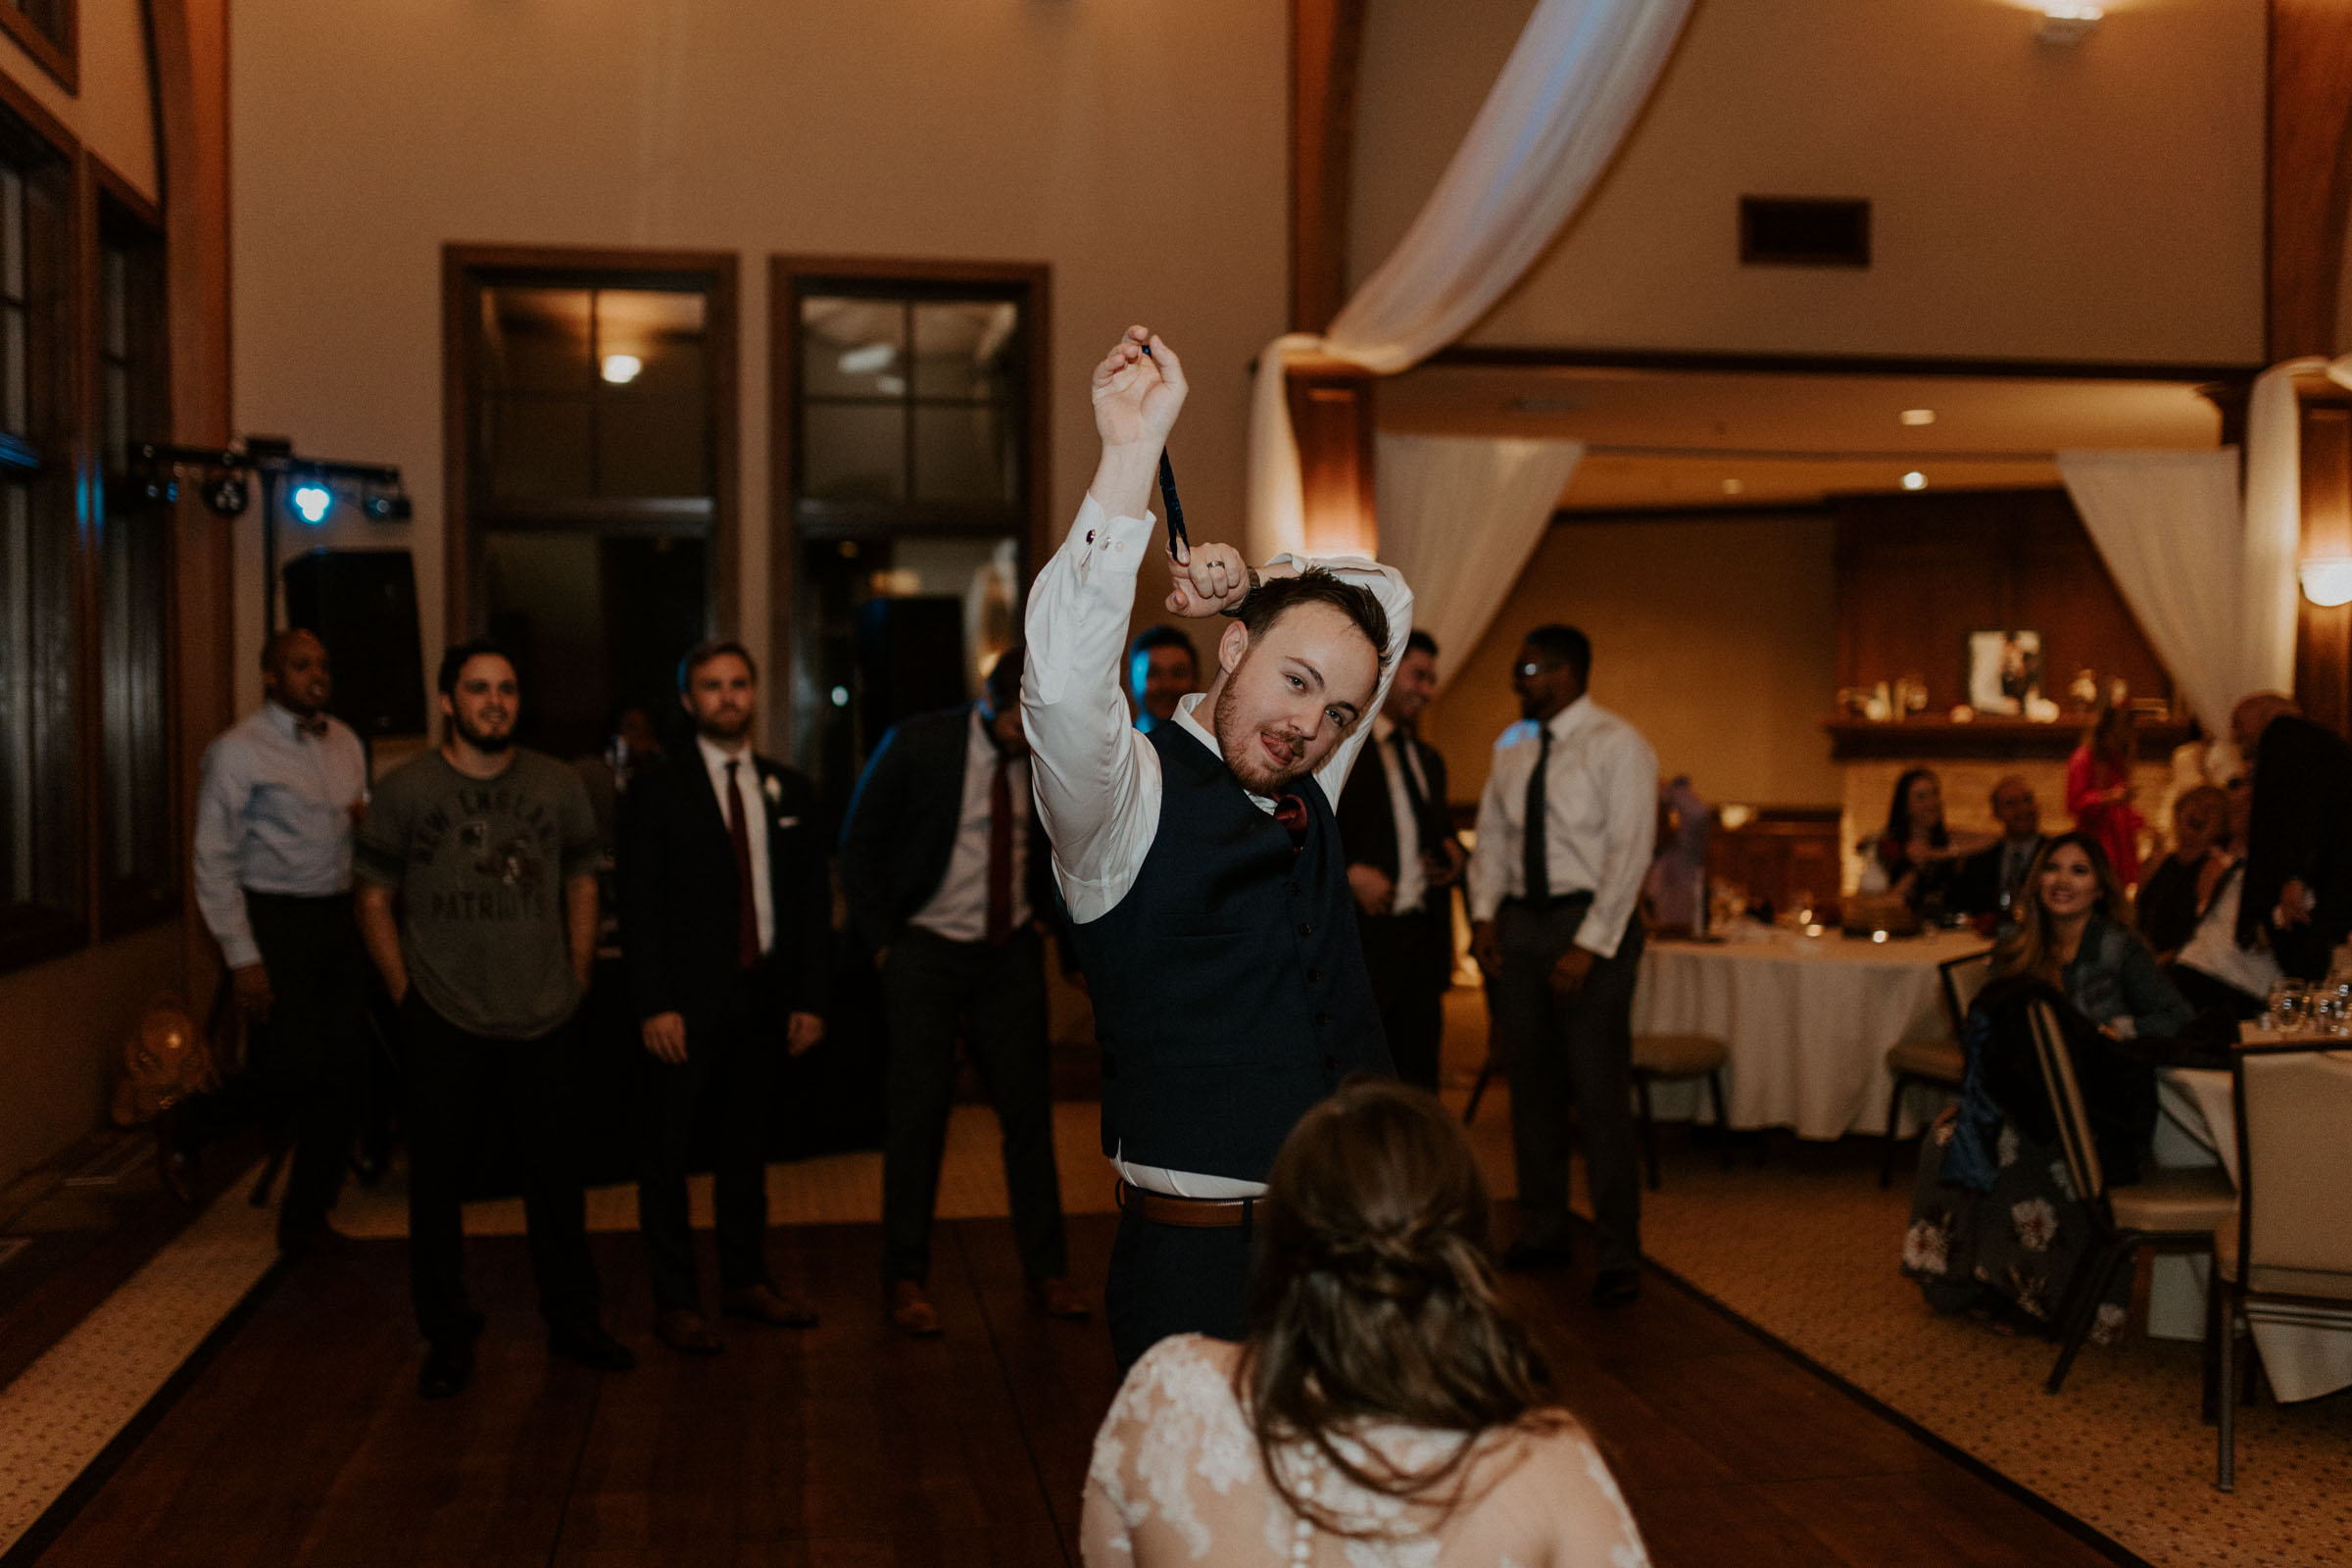 groom taking off garter during wedding reception